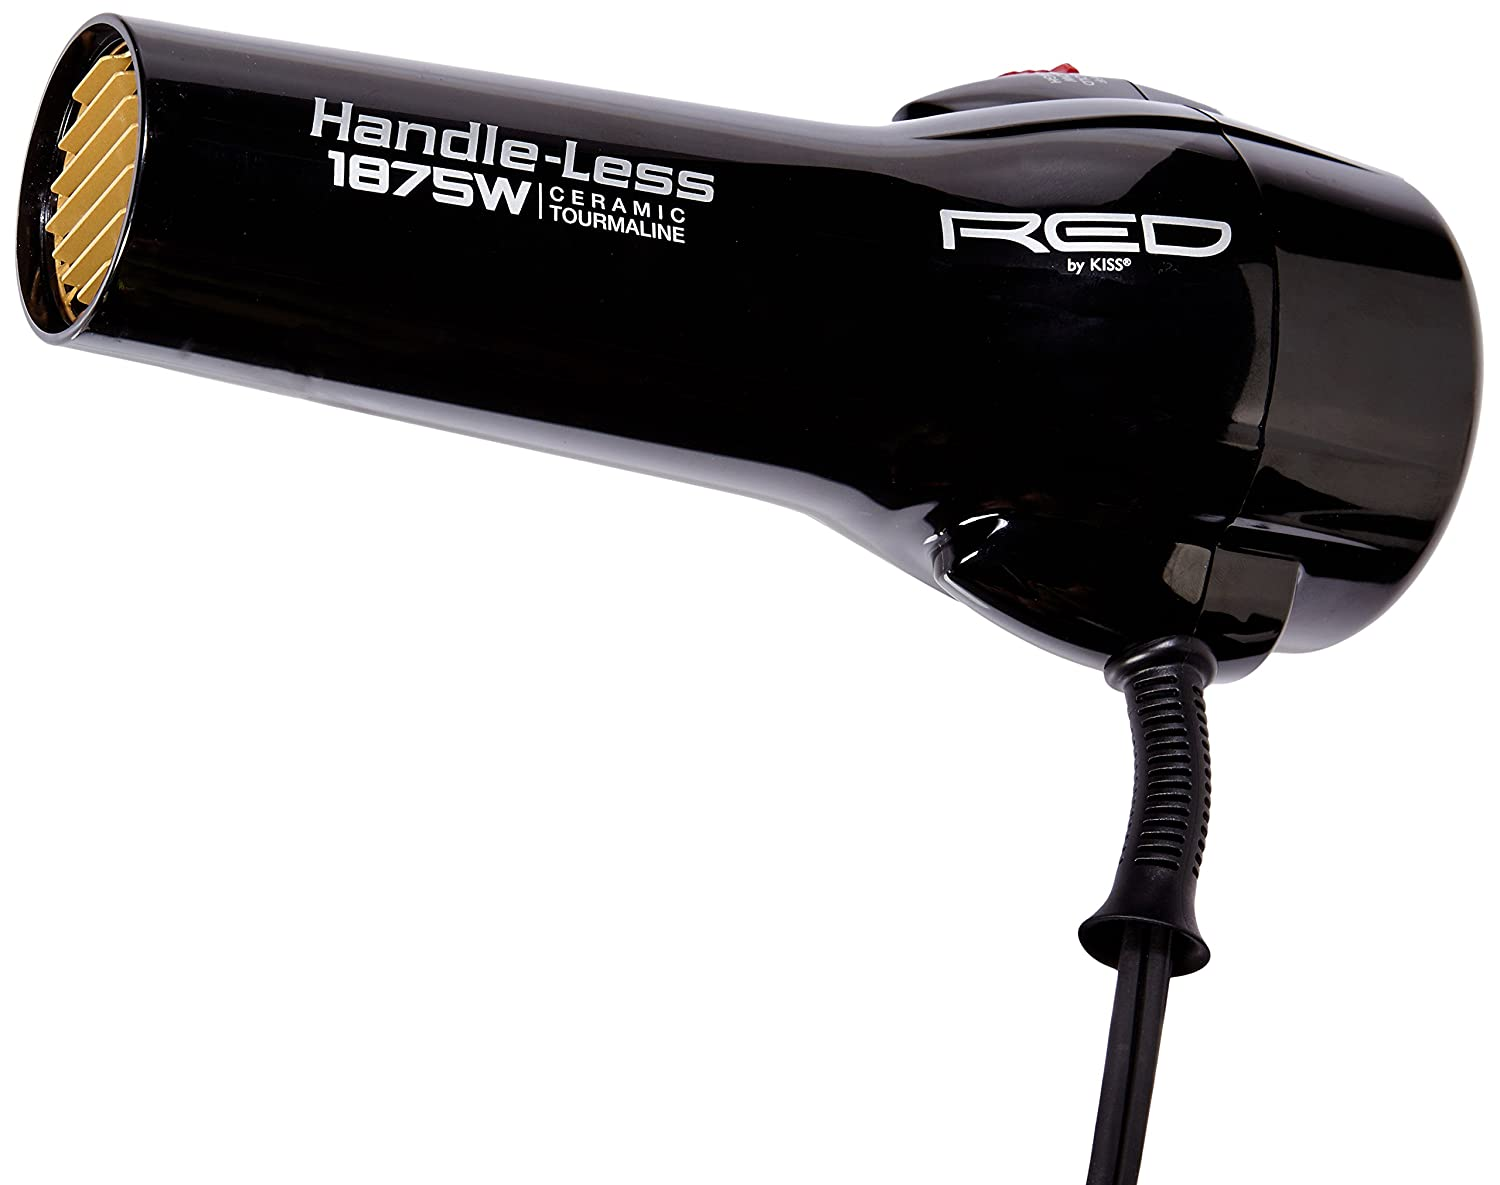 Red by Kiss Handle-Less 1875 Watt Ceramic Tourmaline Hair Dryer With 3 Additional Styling Attachments